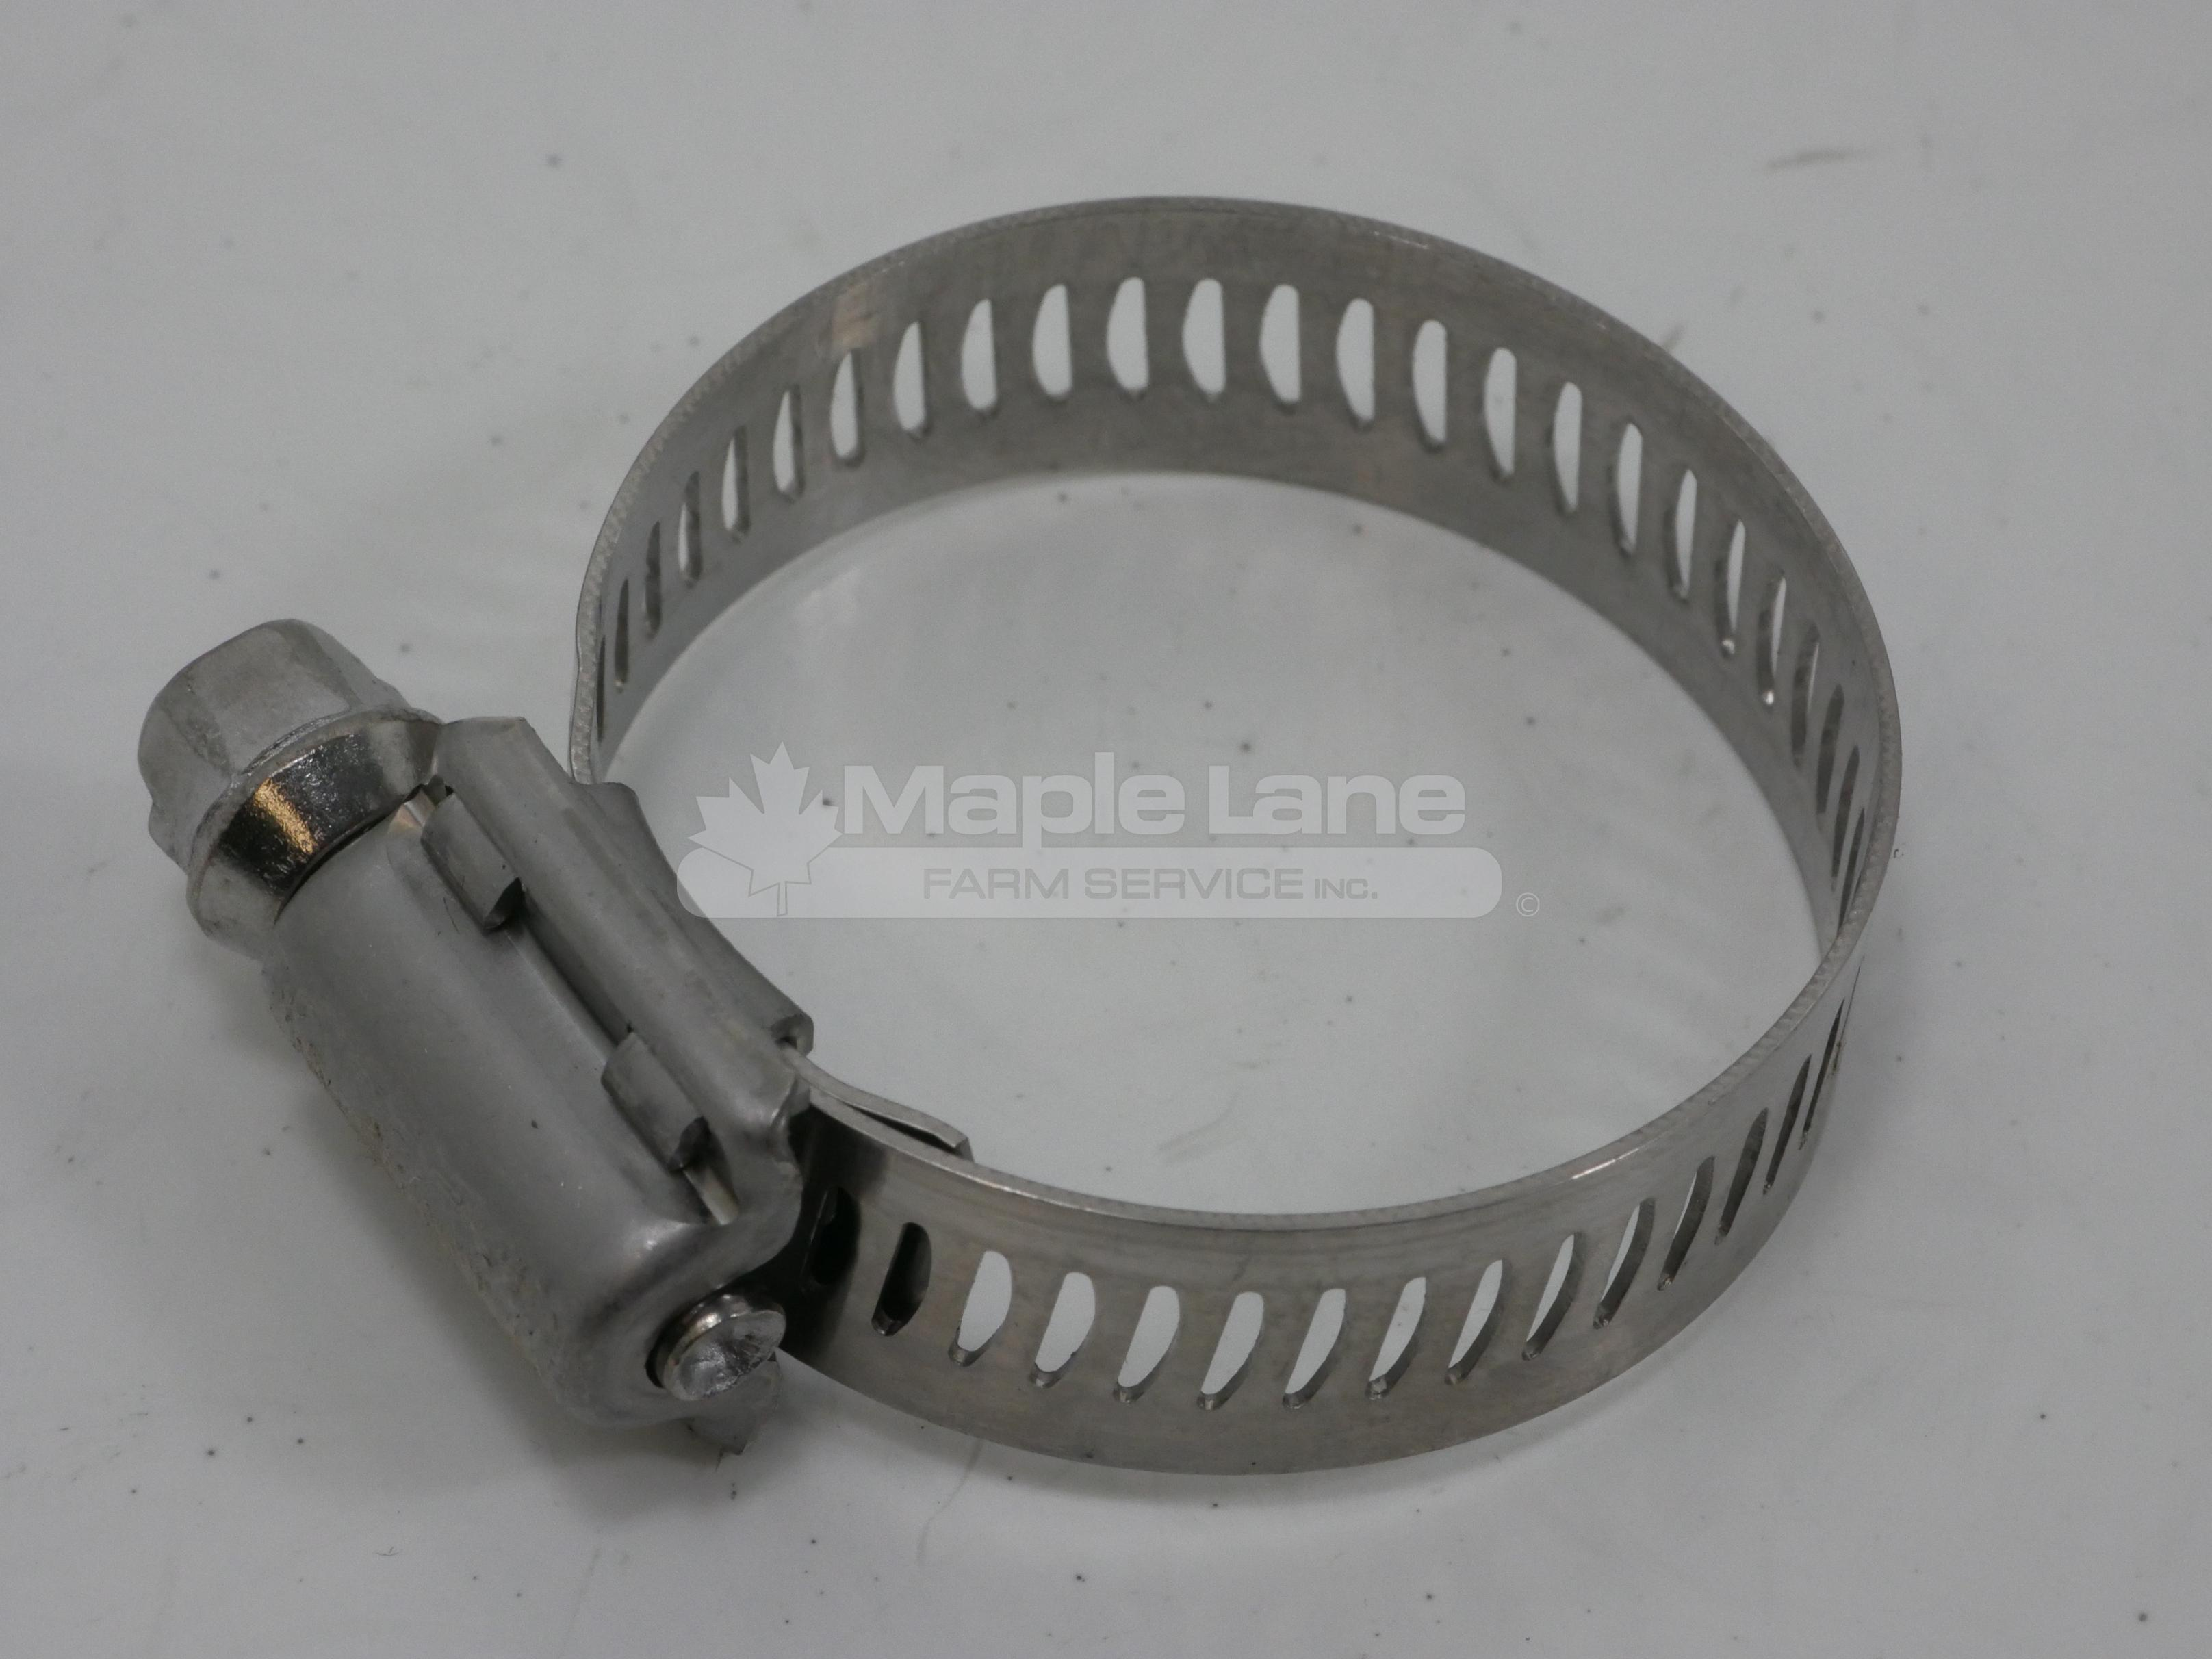 AG561213 Hose Clamp